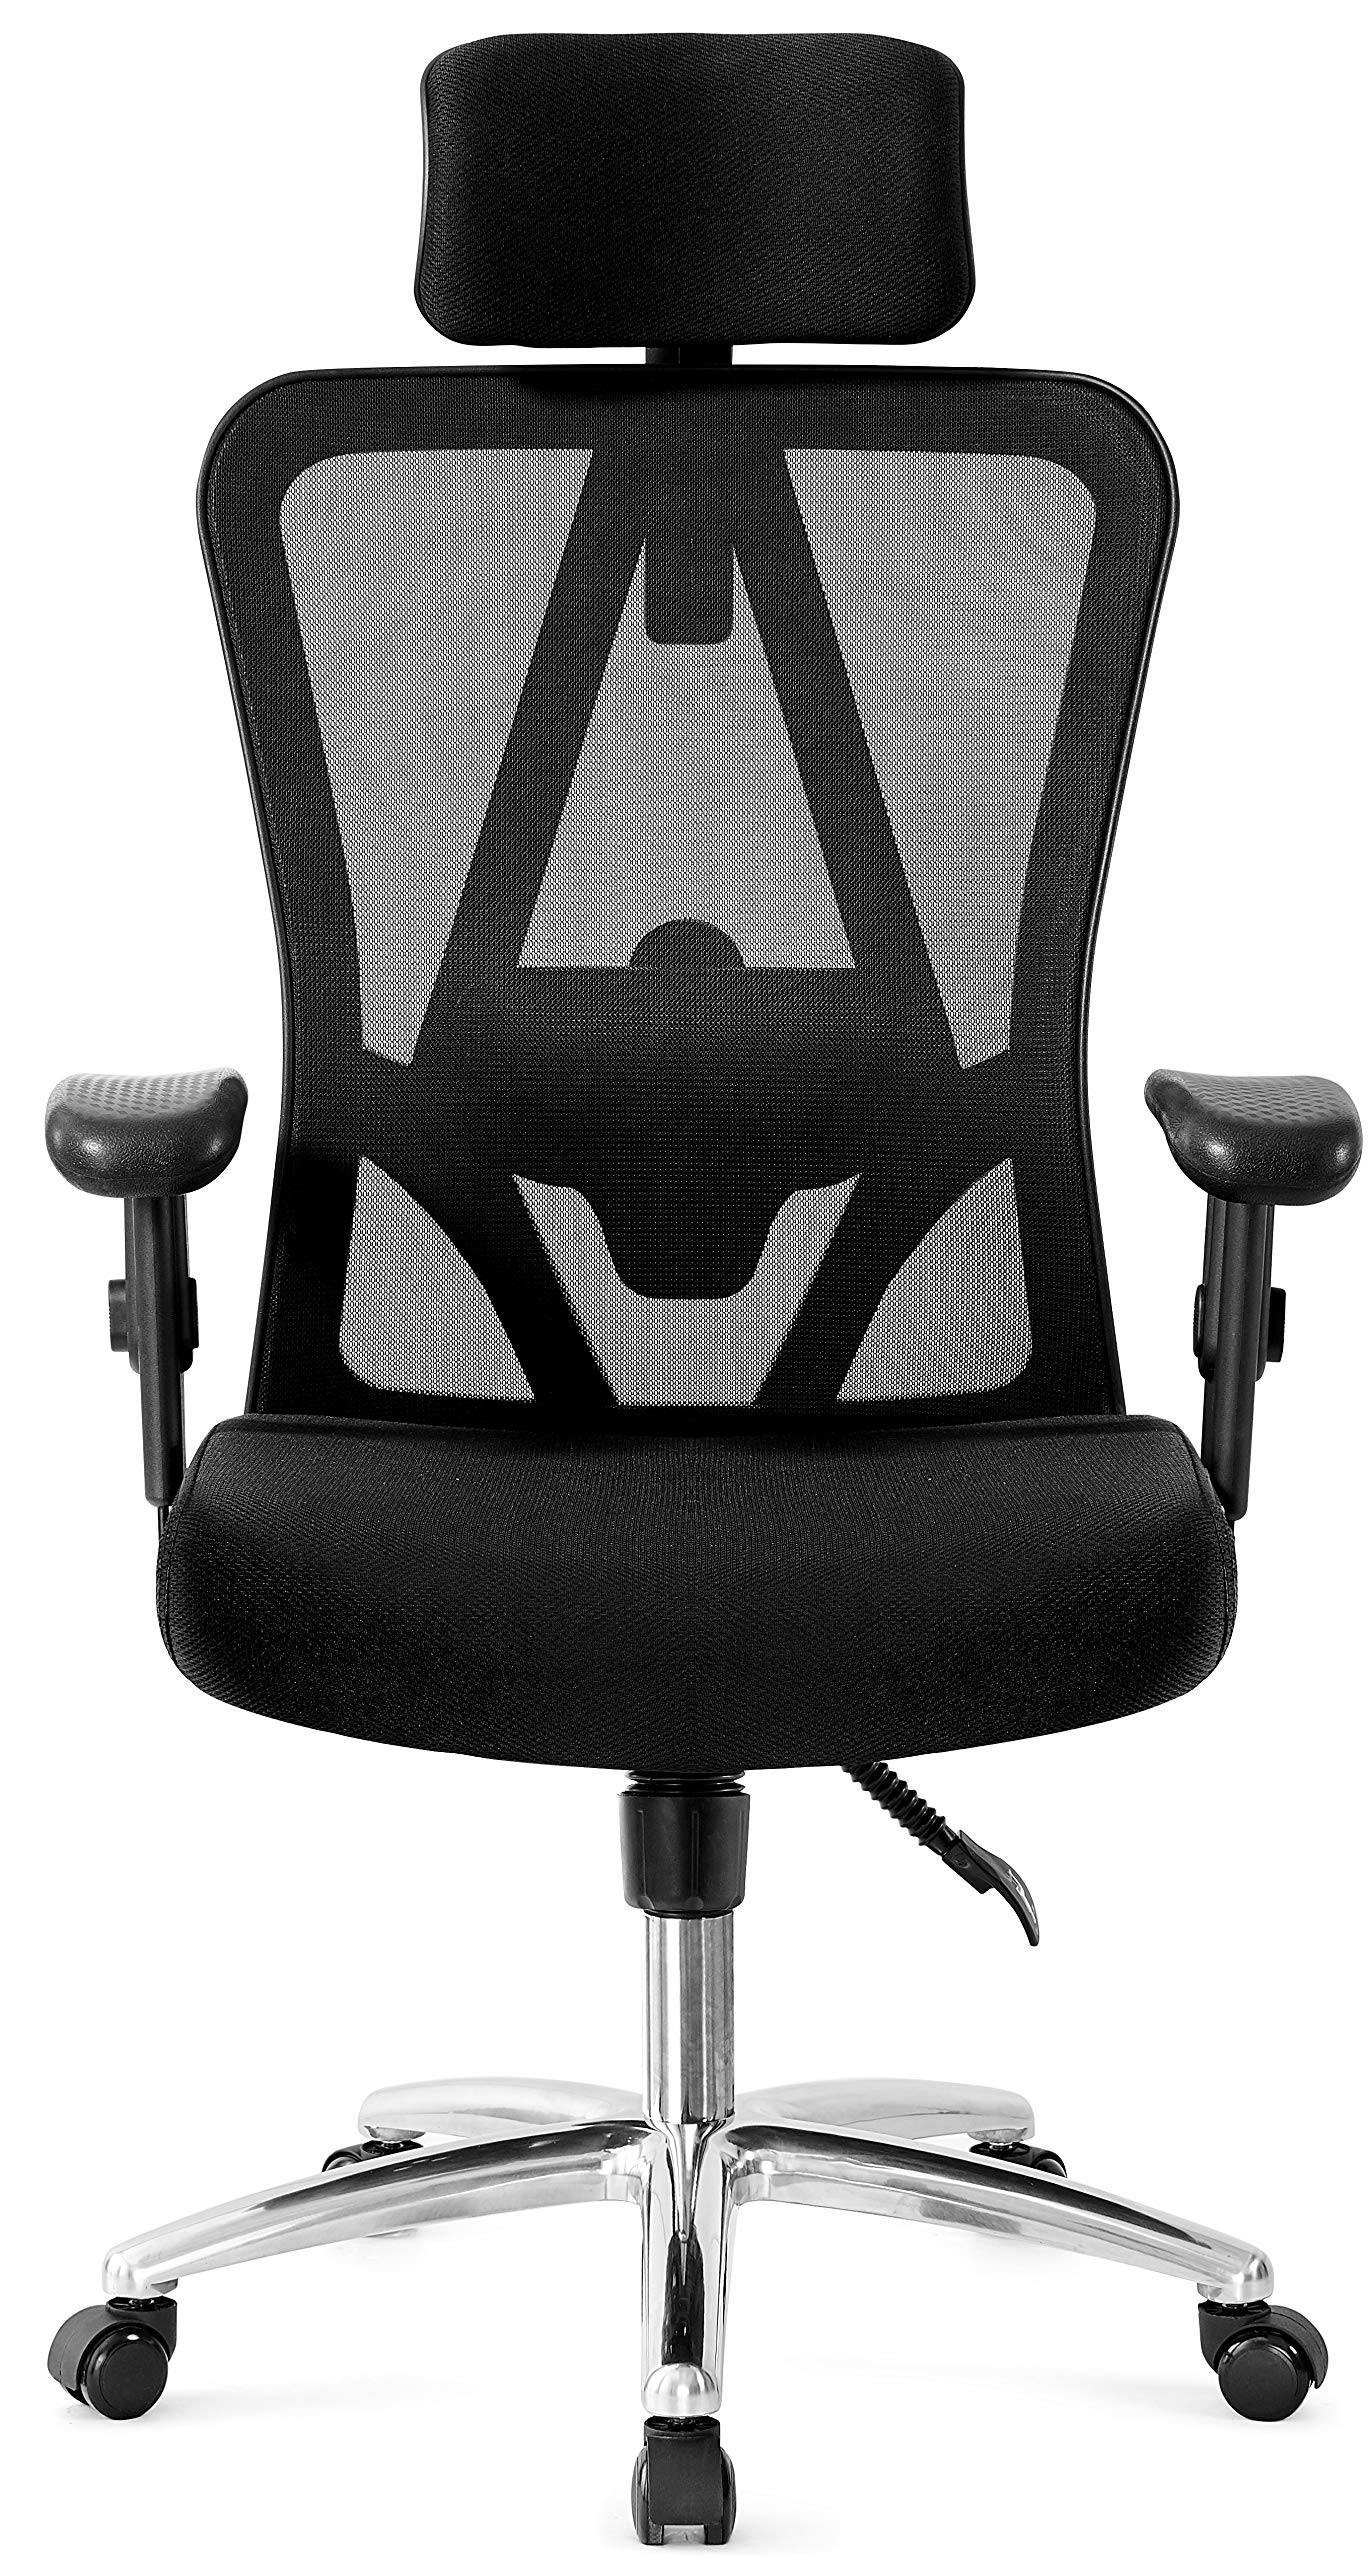 Ticova Ergonomic Office Chair with Adjustable Headrest, Armrest and Lumbar Support - High Back Mesh Chair with Thick Seat Cushion - Reclinable Computer Desk Chair by Ticova